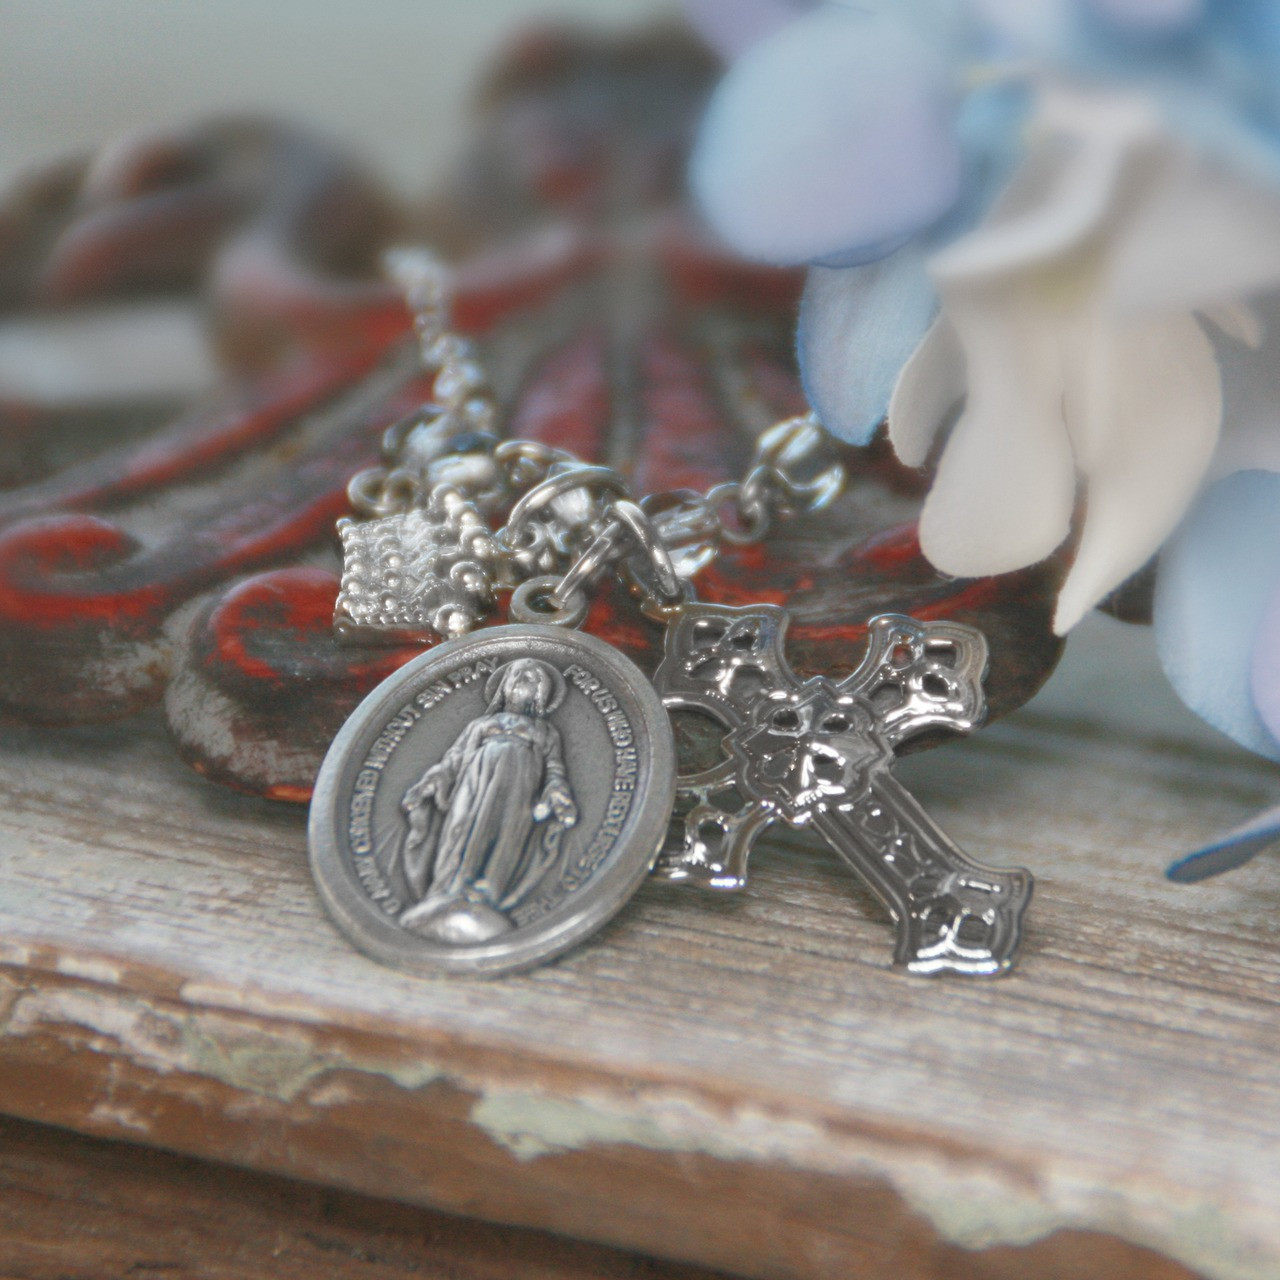 IN-583 Mary Charm Necklace with Filagree Cross and Crown